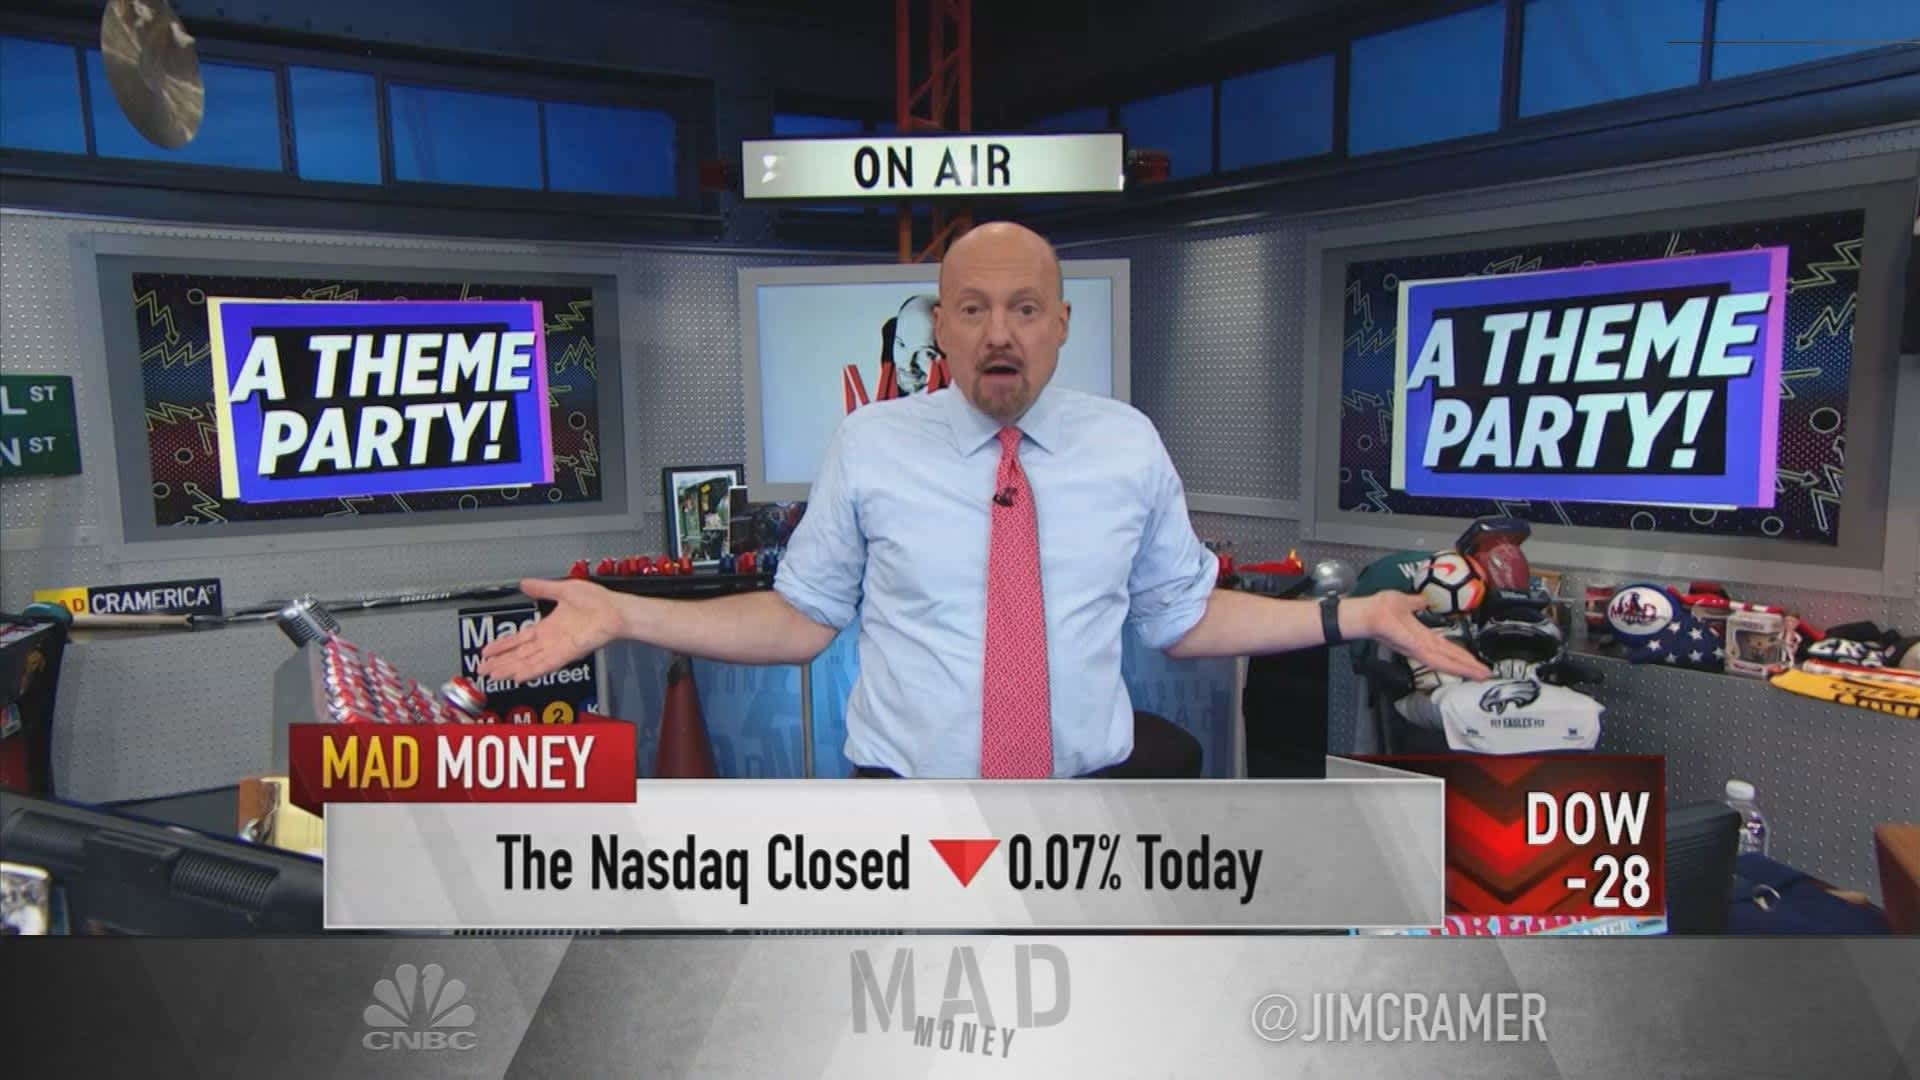 Jim Cramer: Invest in 'big, apolitical themes that work no matter what'